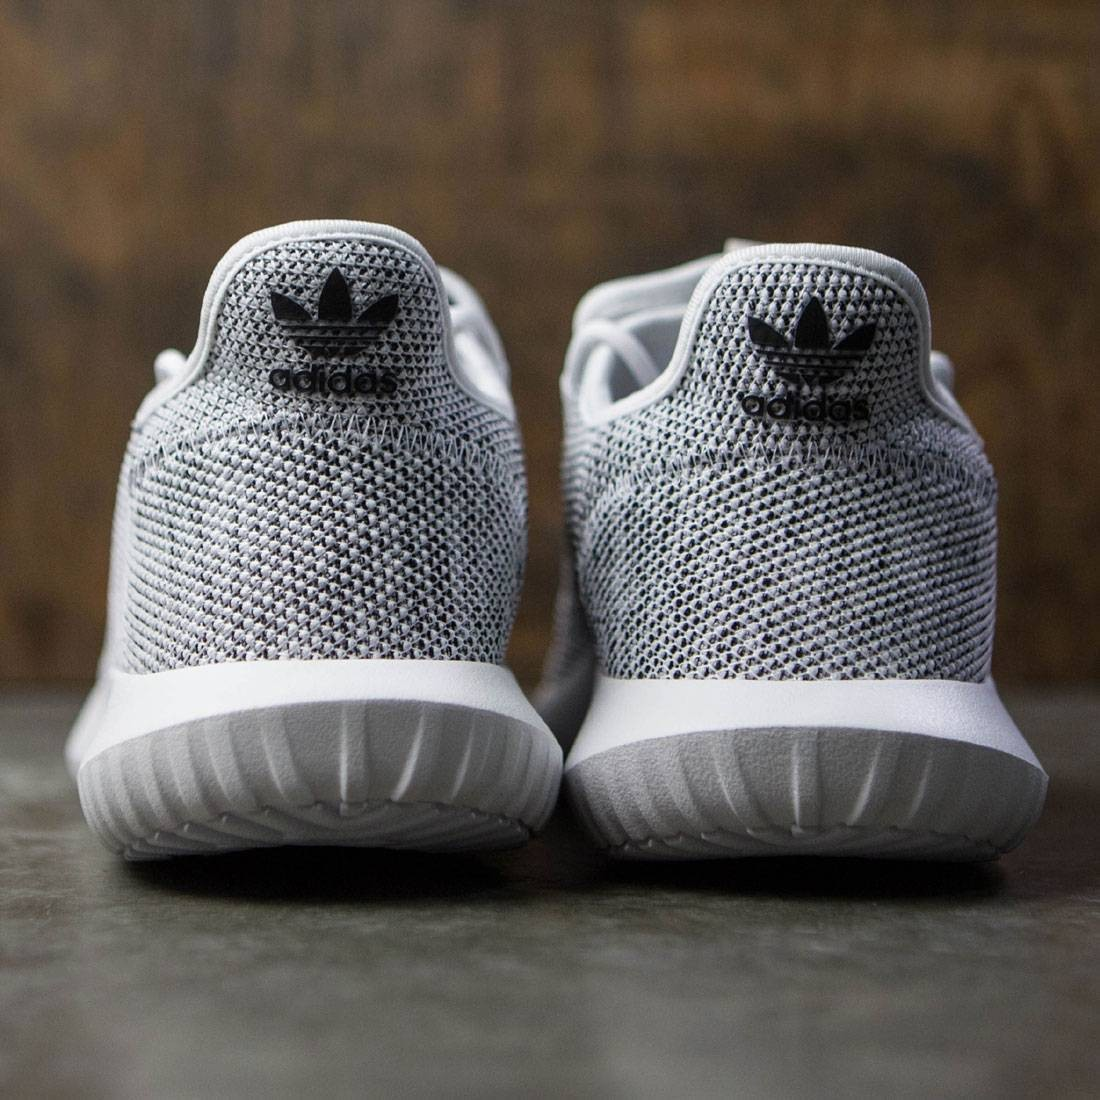 ef5157ad5d2d What s More Comfy Adidas Yeezy 350 V2 vs Nike VaporMax Flyknit